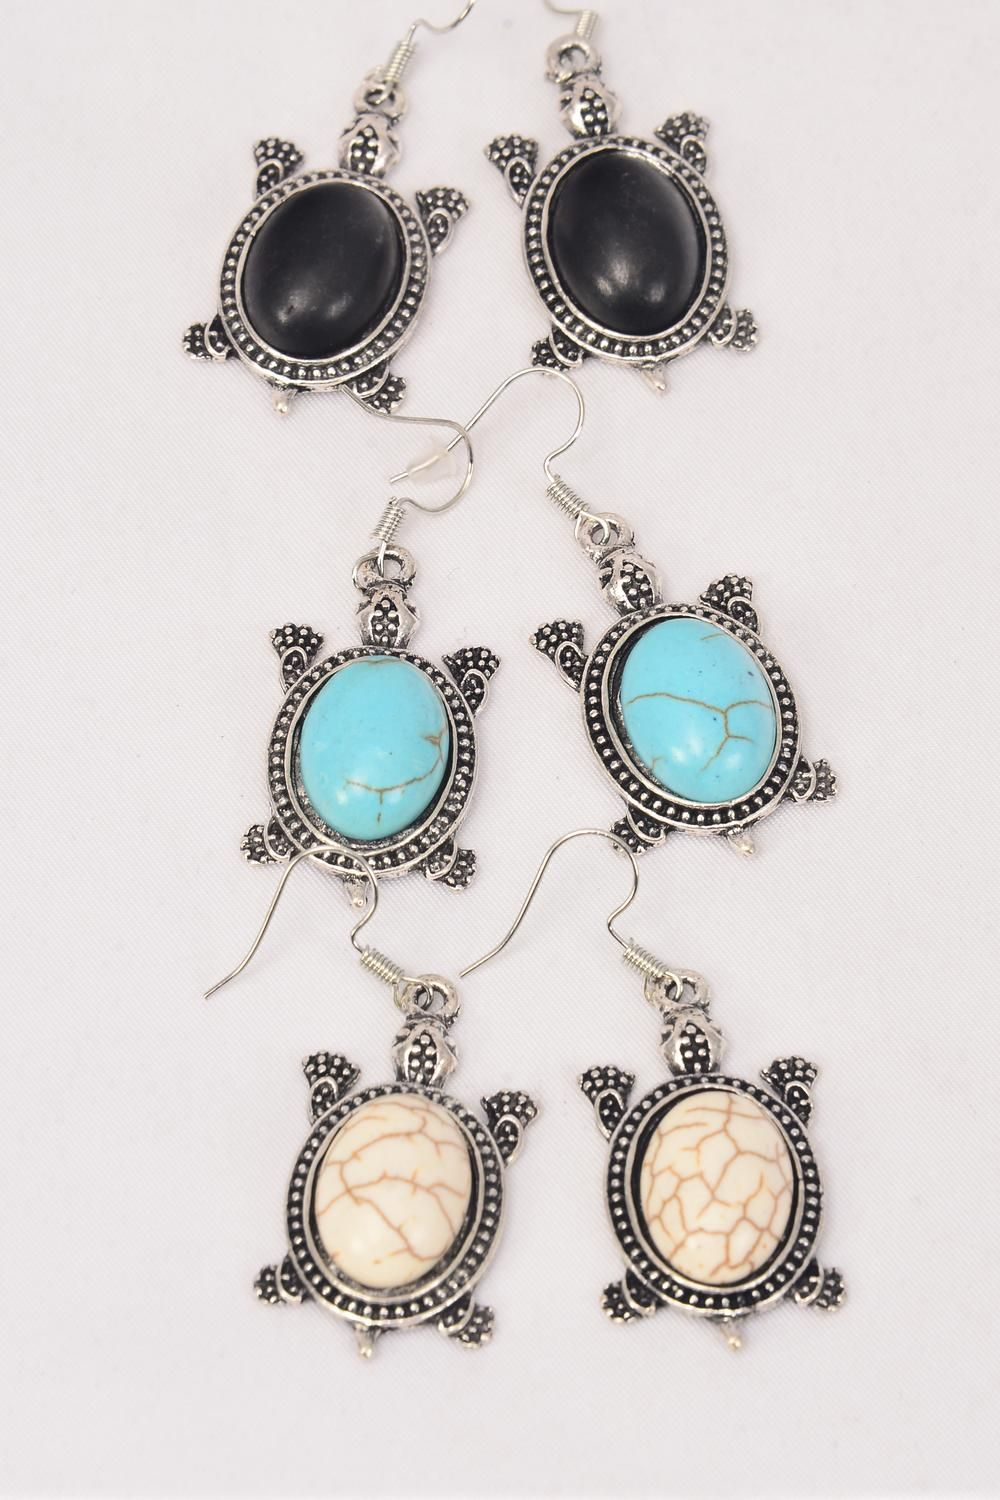 "Earrings Metal Antique Turtle Semiprecious Stone/DZ match 26094 **Fish Hook** Size-1.5""x 1"" Wide,4 Black,4 Ivory,4 Turquoise Asst,Earring Card & OPP Bag & UPC Code -"